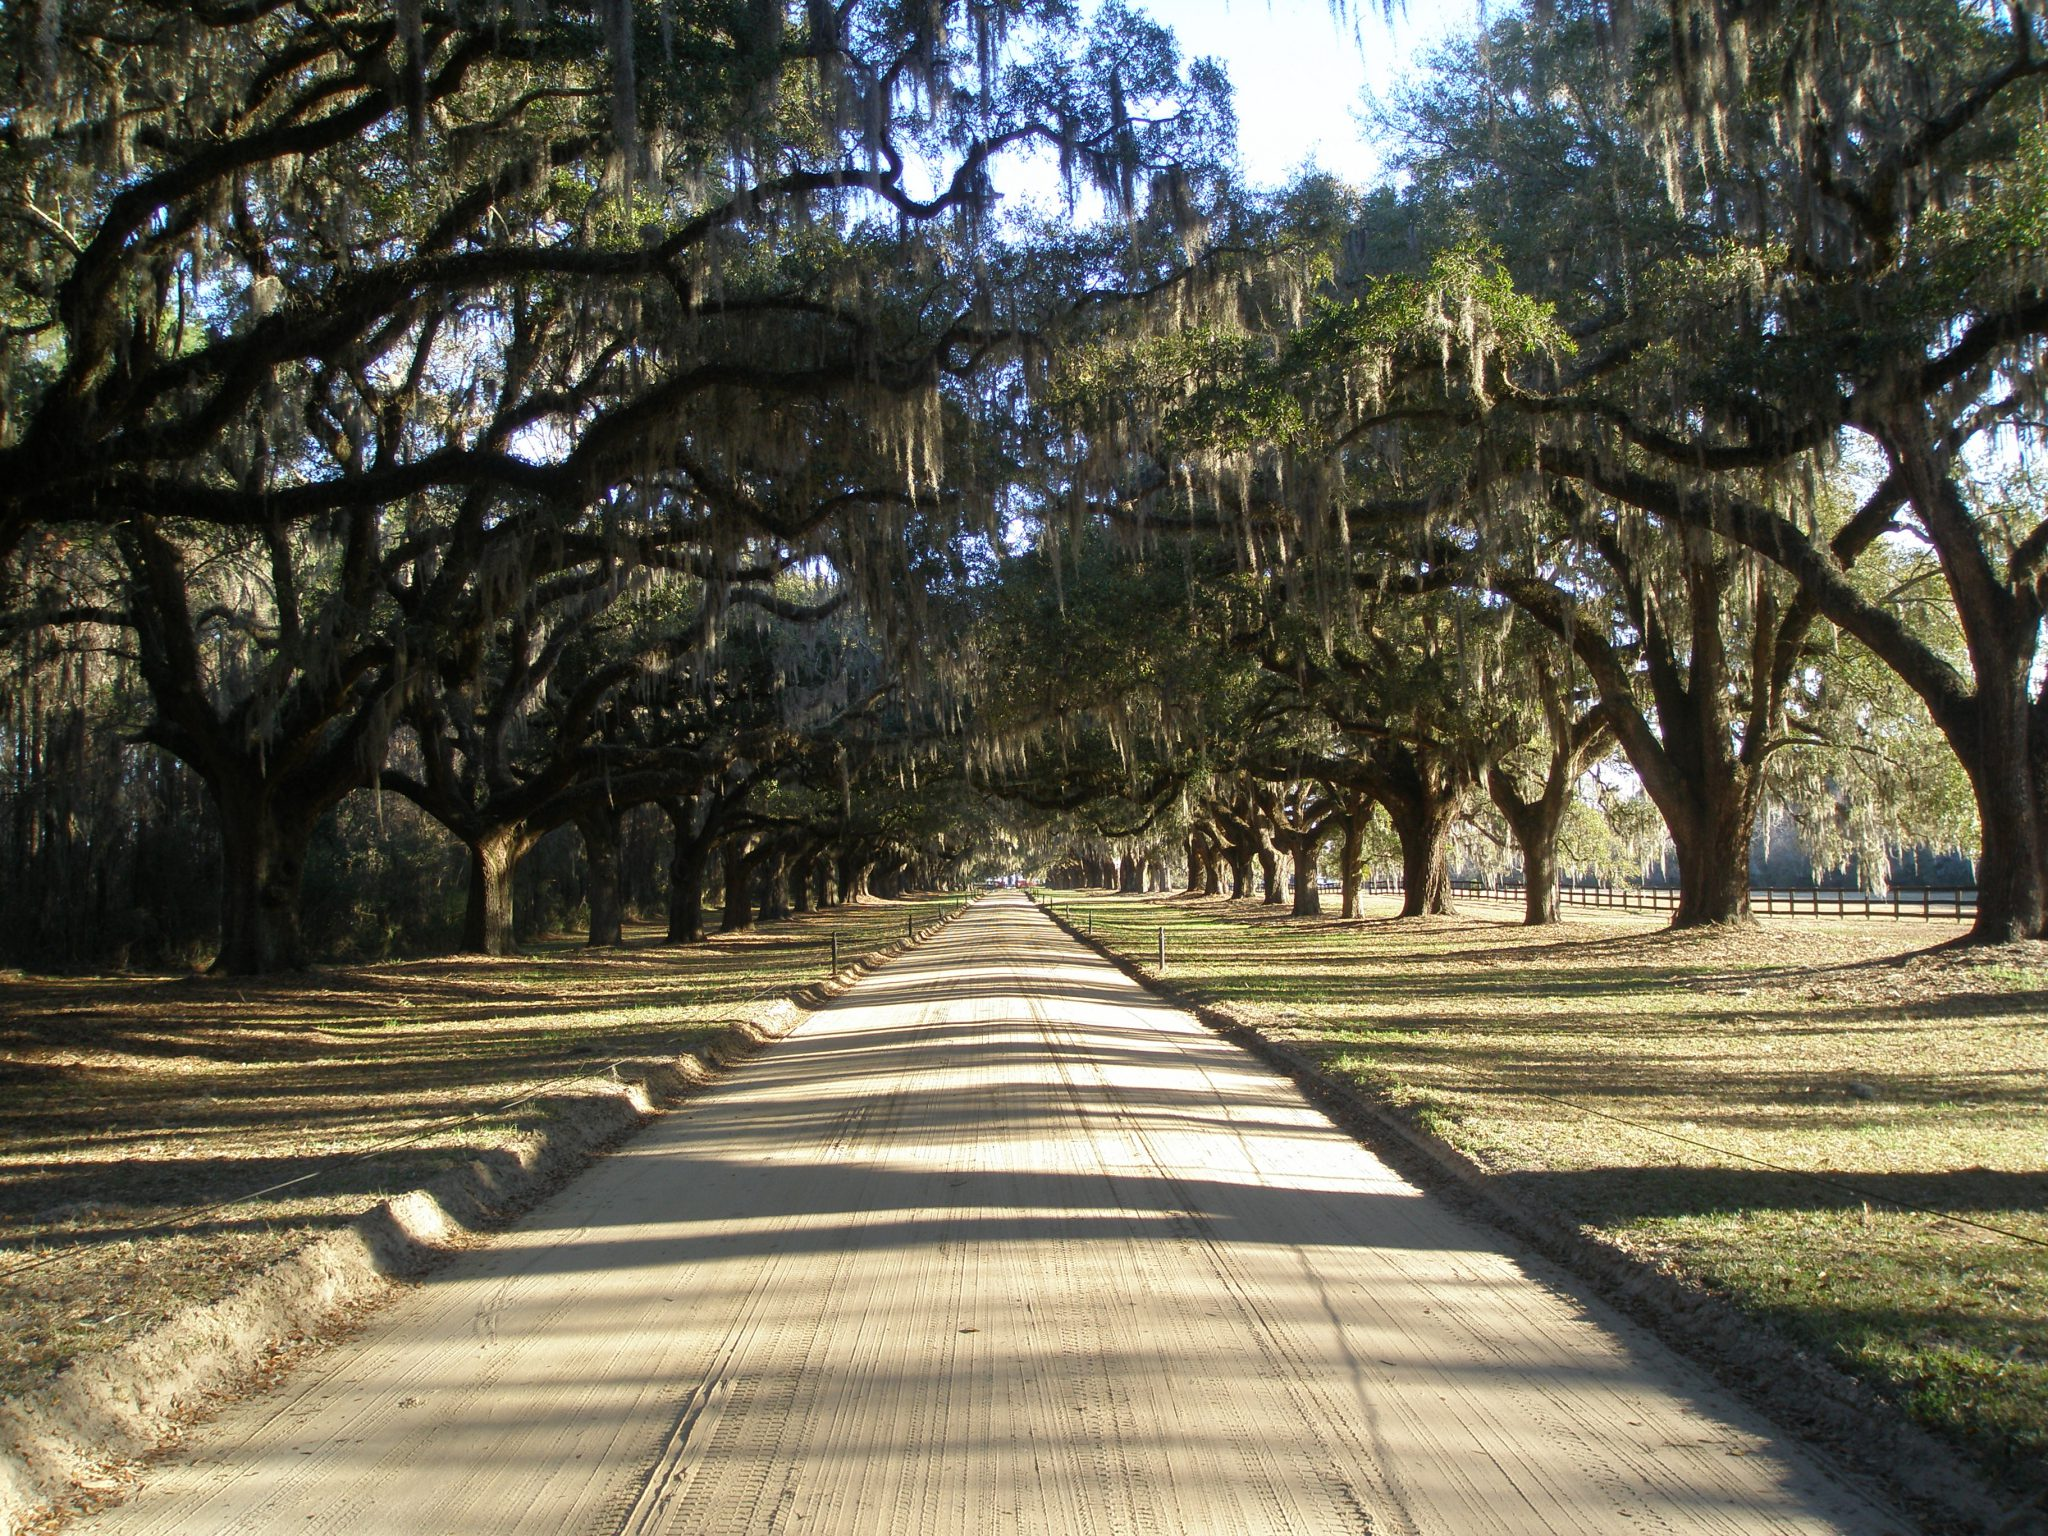 The Avenue of Oaks, at Boone Hall Plantation. The Plantation is located next to Wampancheone Creek, which flows into Horlbeck Creek, and then into the Wando River. The Wando then flows into the Cooper River, on which one can ride the tide right into Charleston.